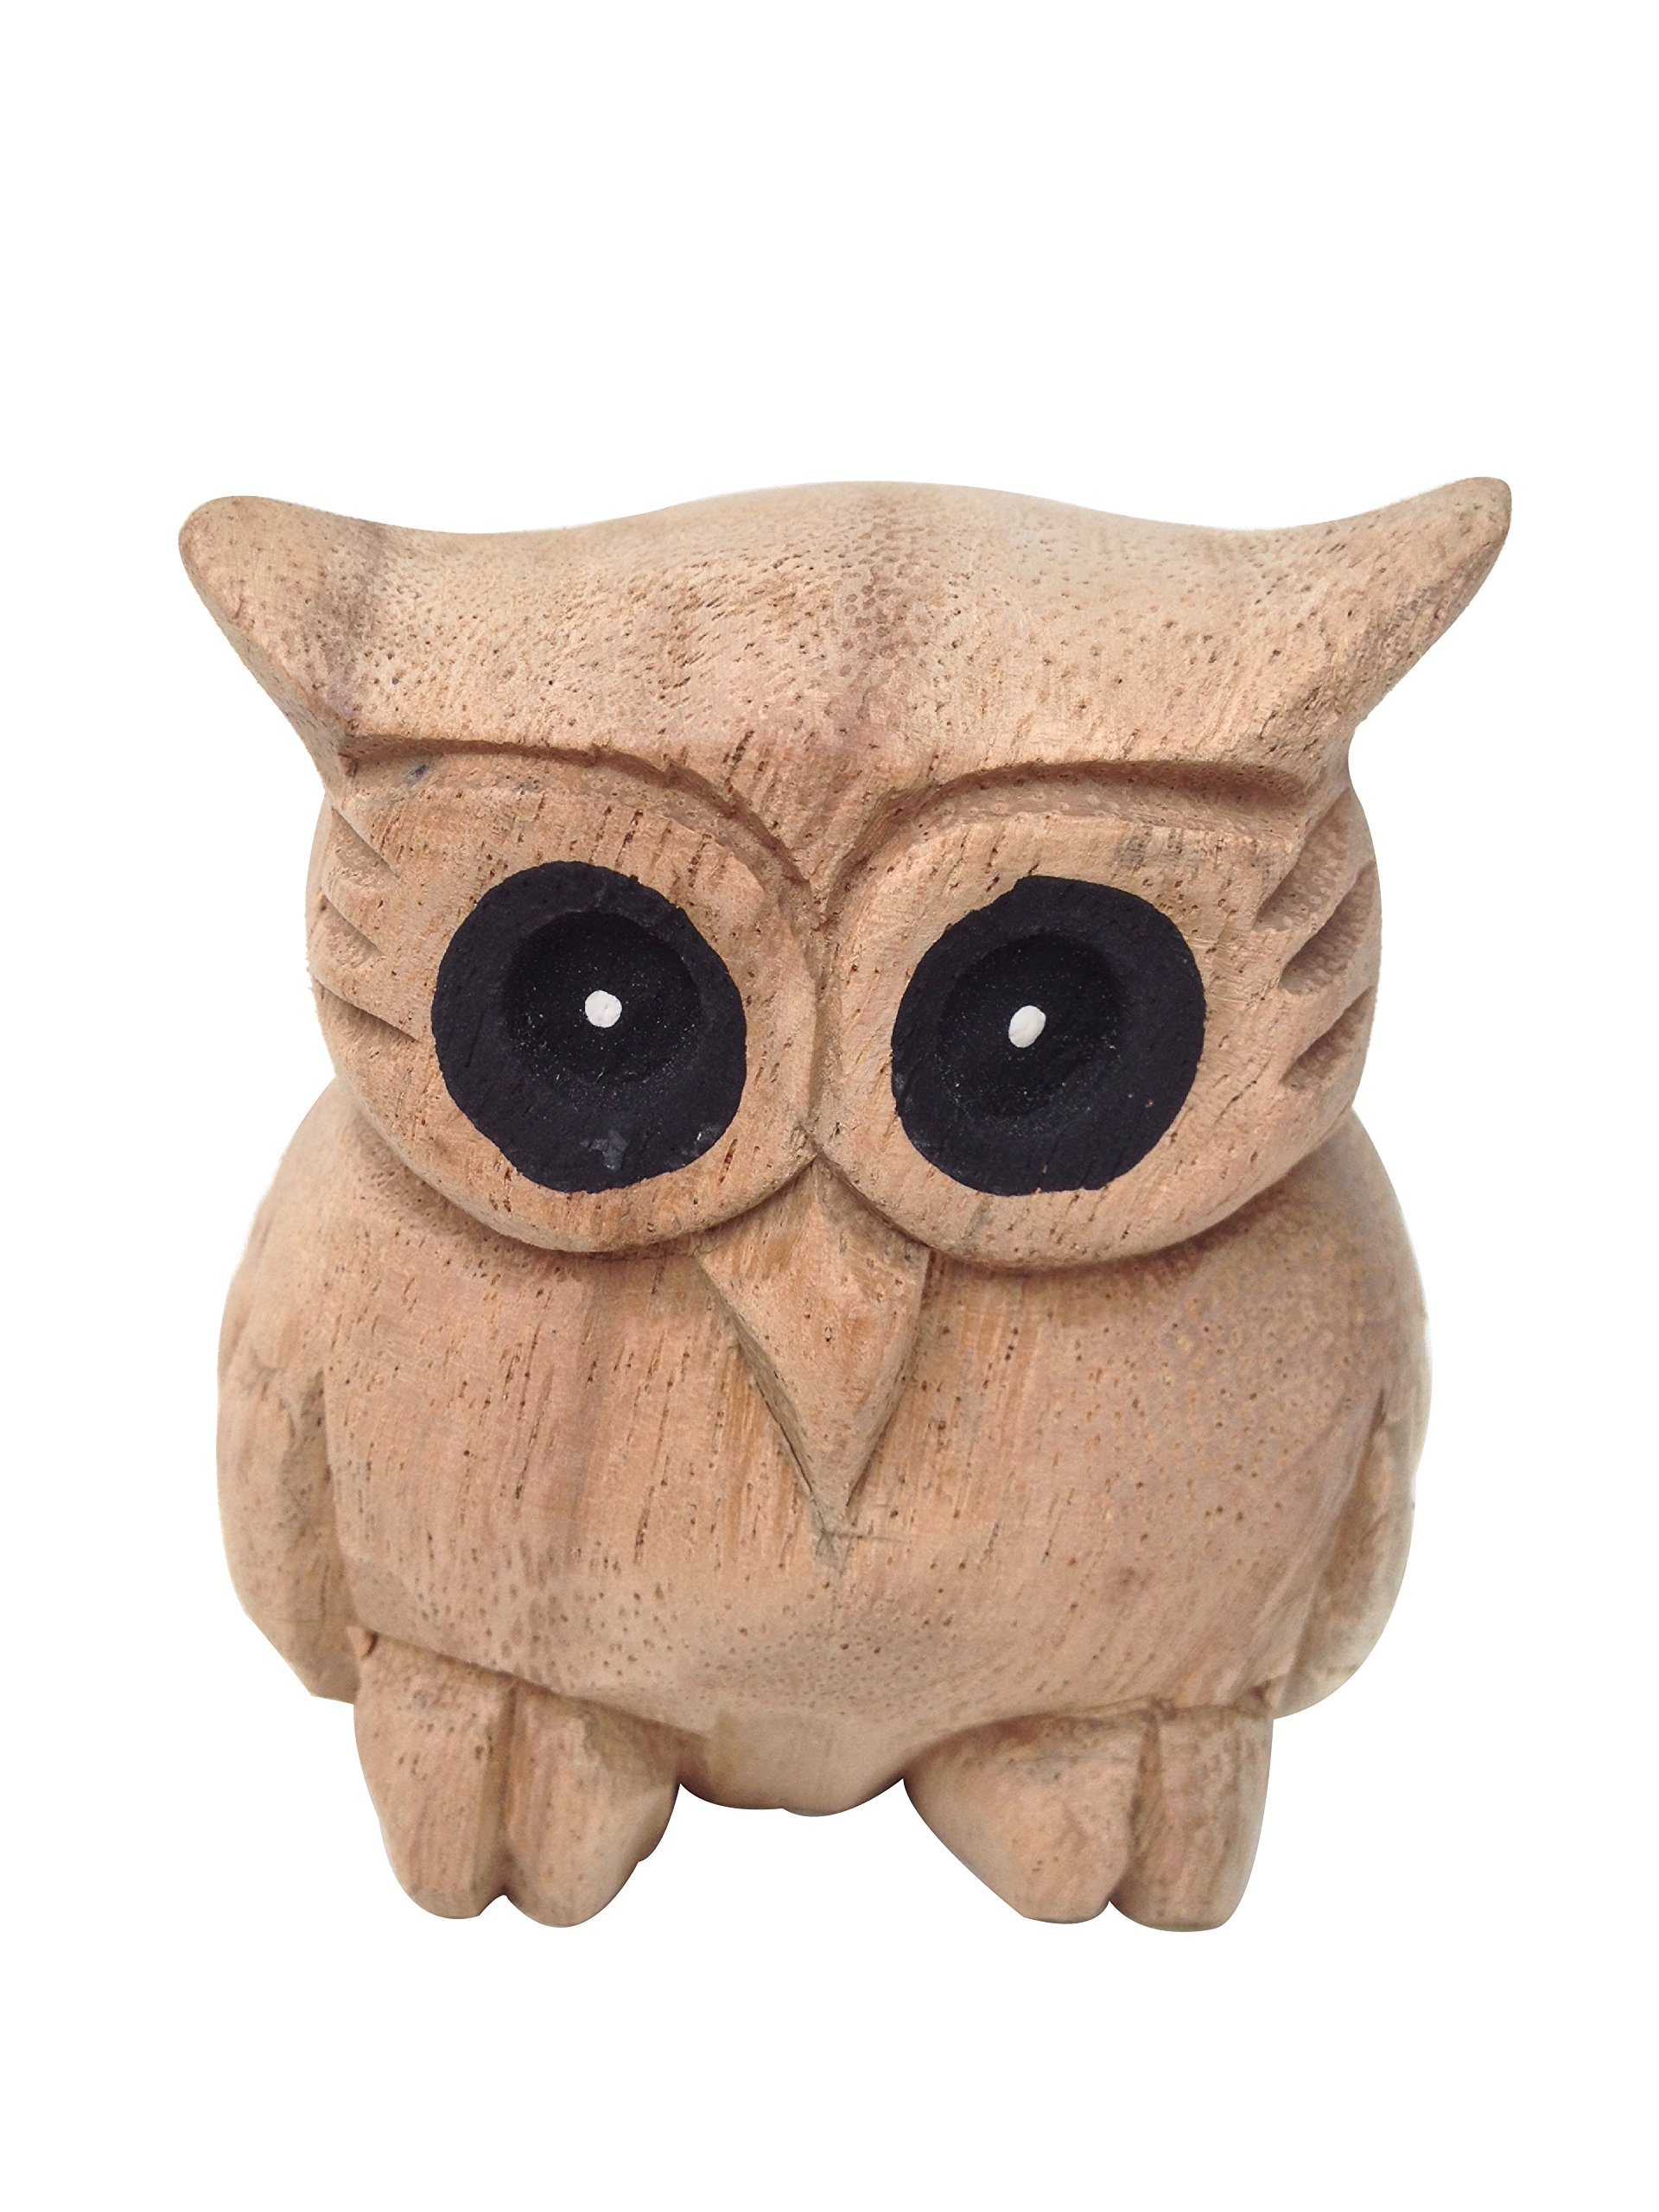 Wood For Décor Wooden Animal Carving Owl Décor Mimosa Wood in Modern Style